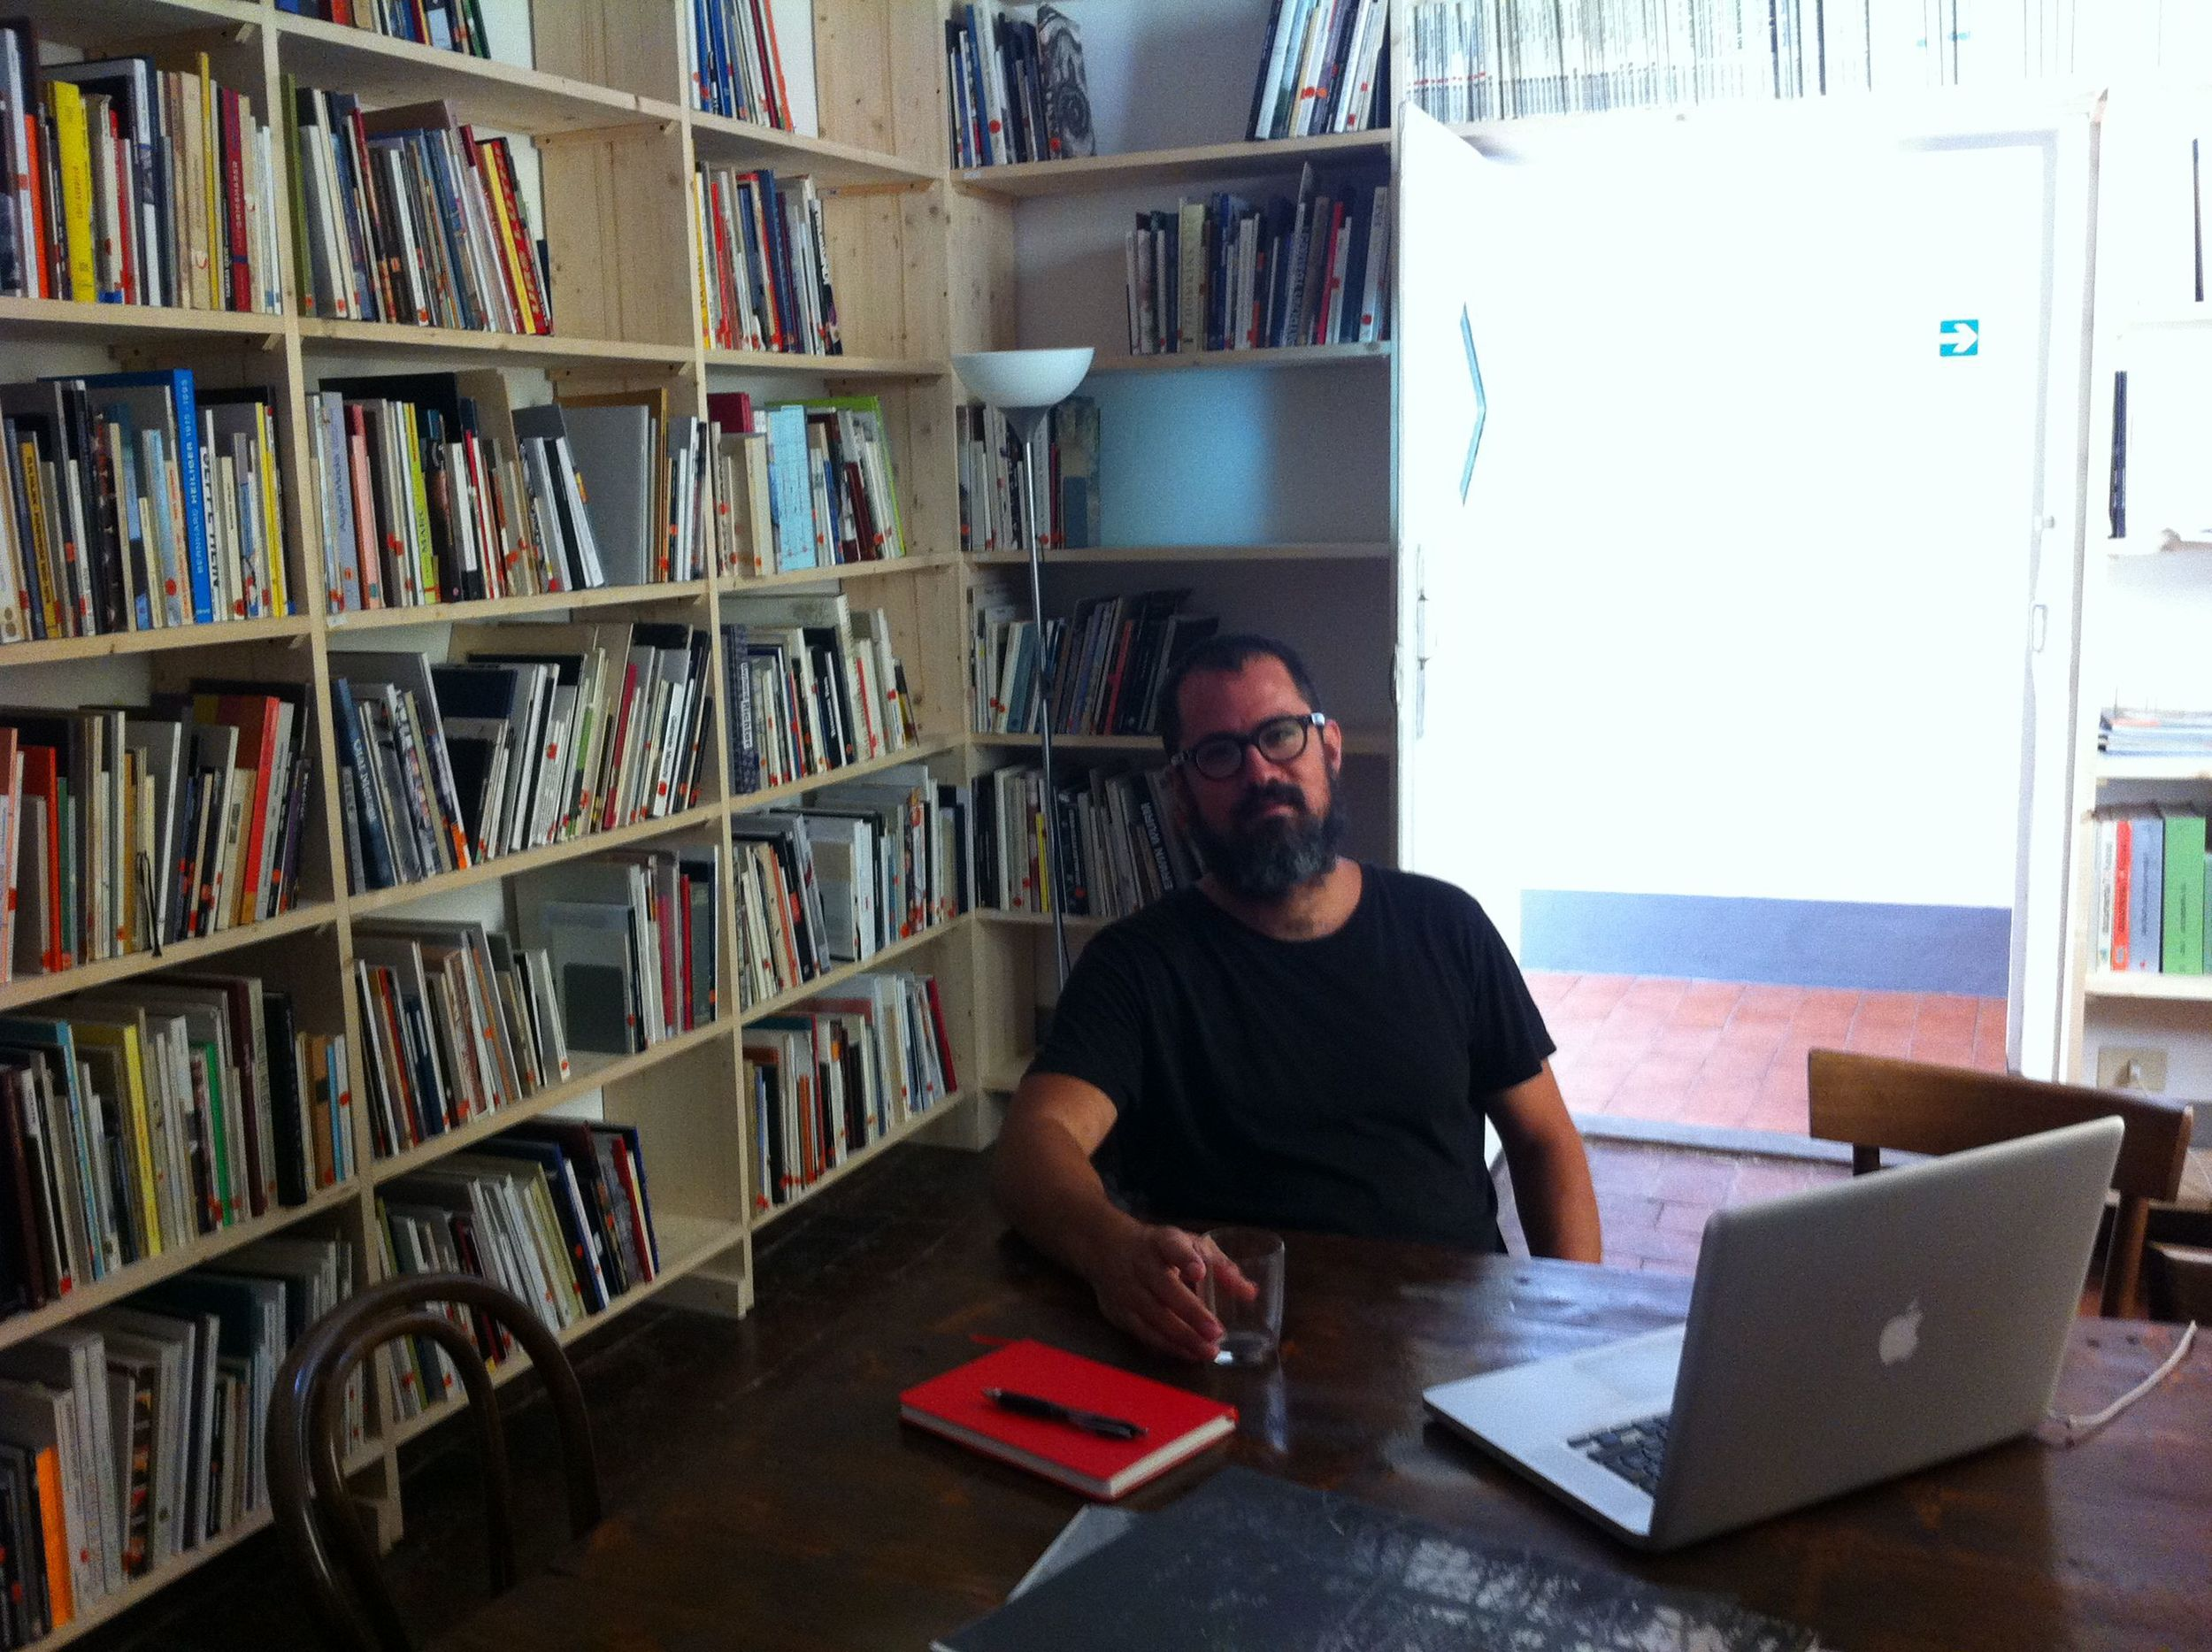 Juan Pablo in the library at Villa Romana during our interview